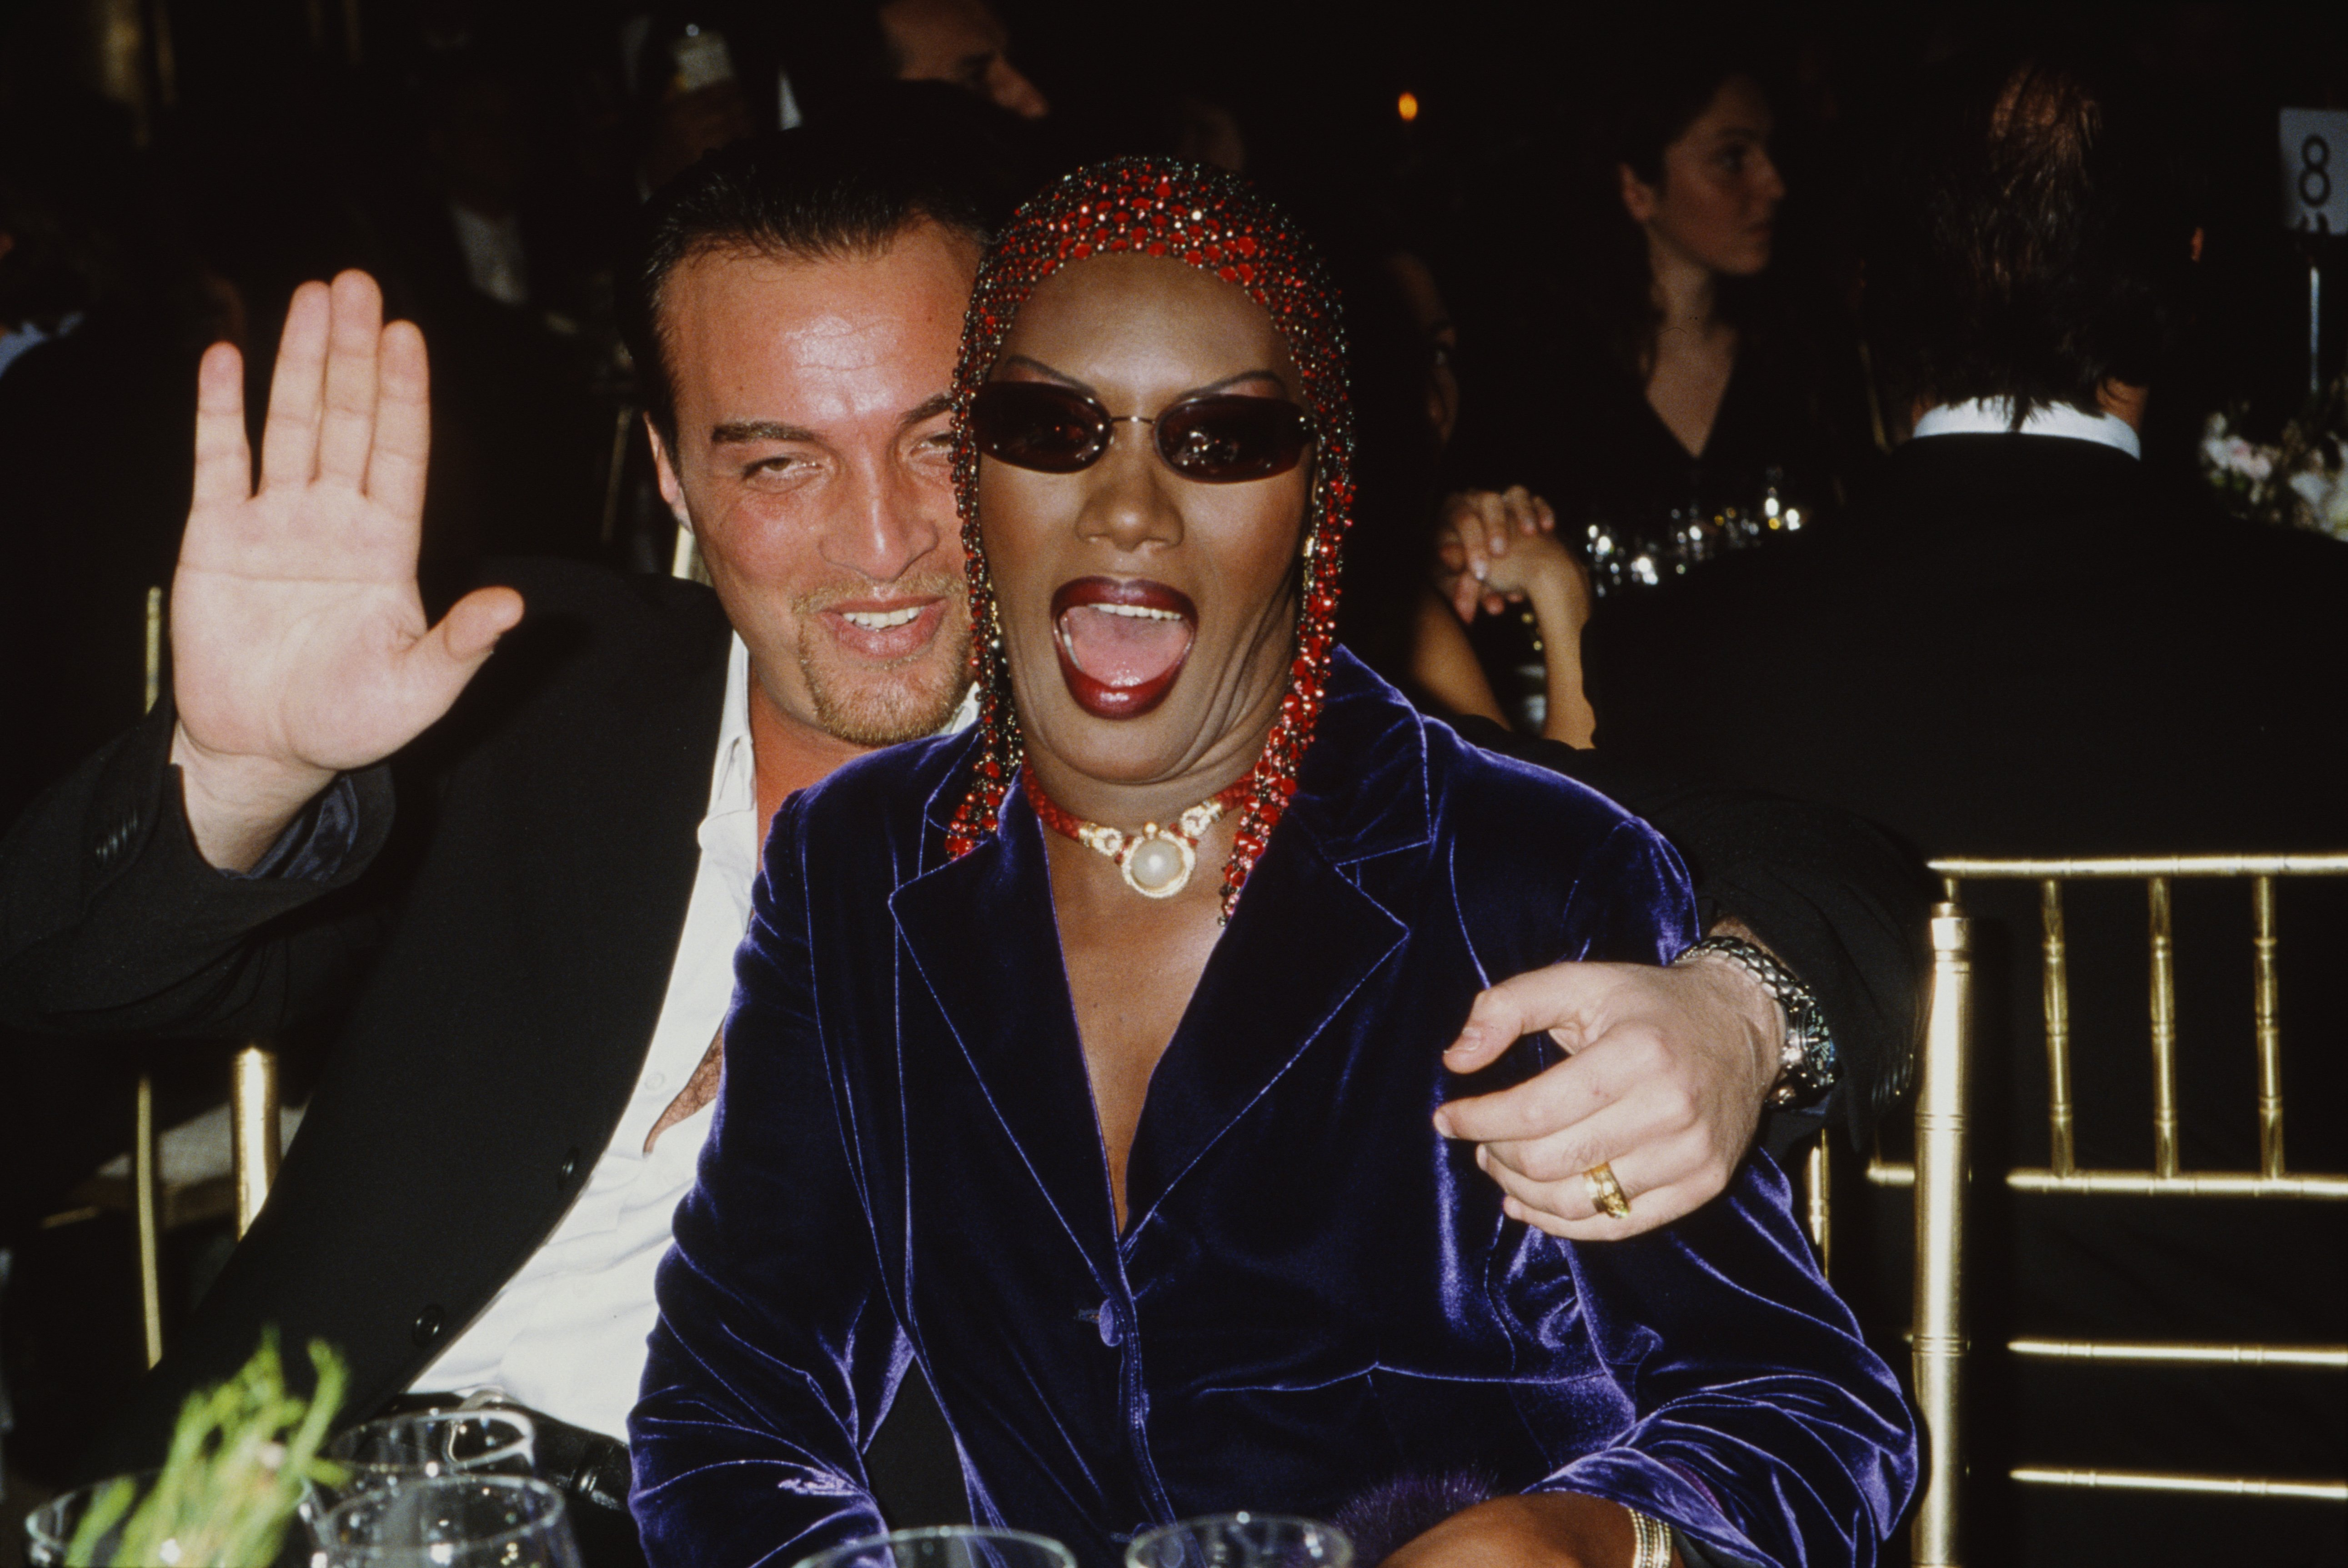 Jamaican singer, actress and model Grace Jones and her husband, Atila Altaunbay, attend the 'Made In Italy' awards ceremony at Cipriani, 42nd Street, New York City, 2000 | Photo: Getty Images